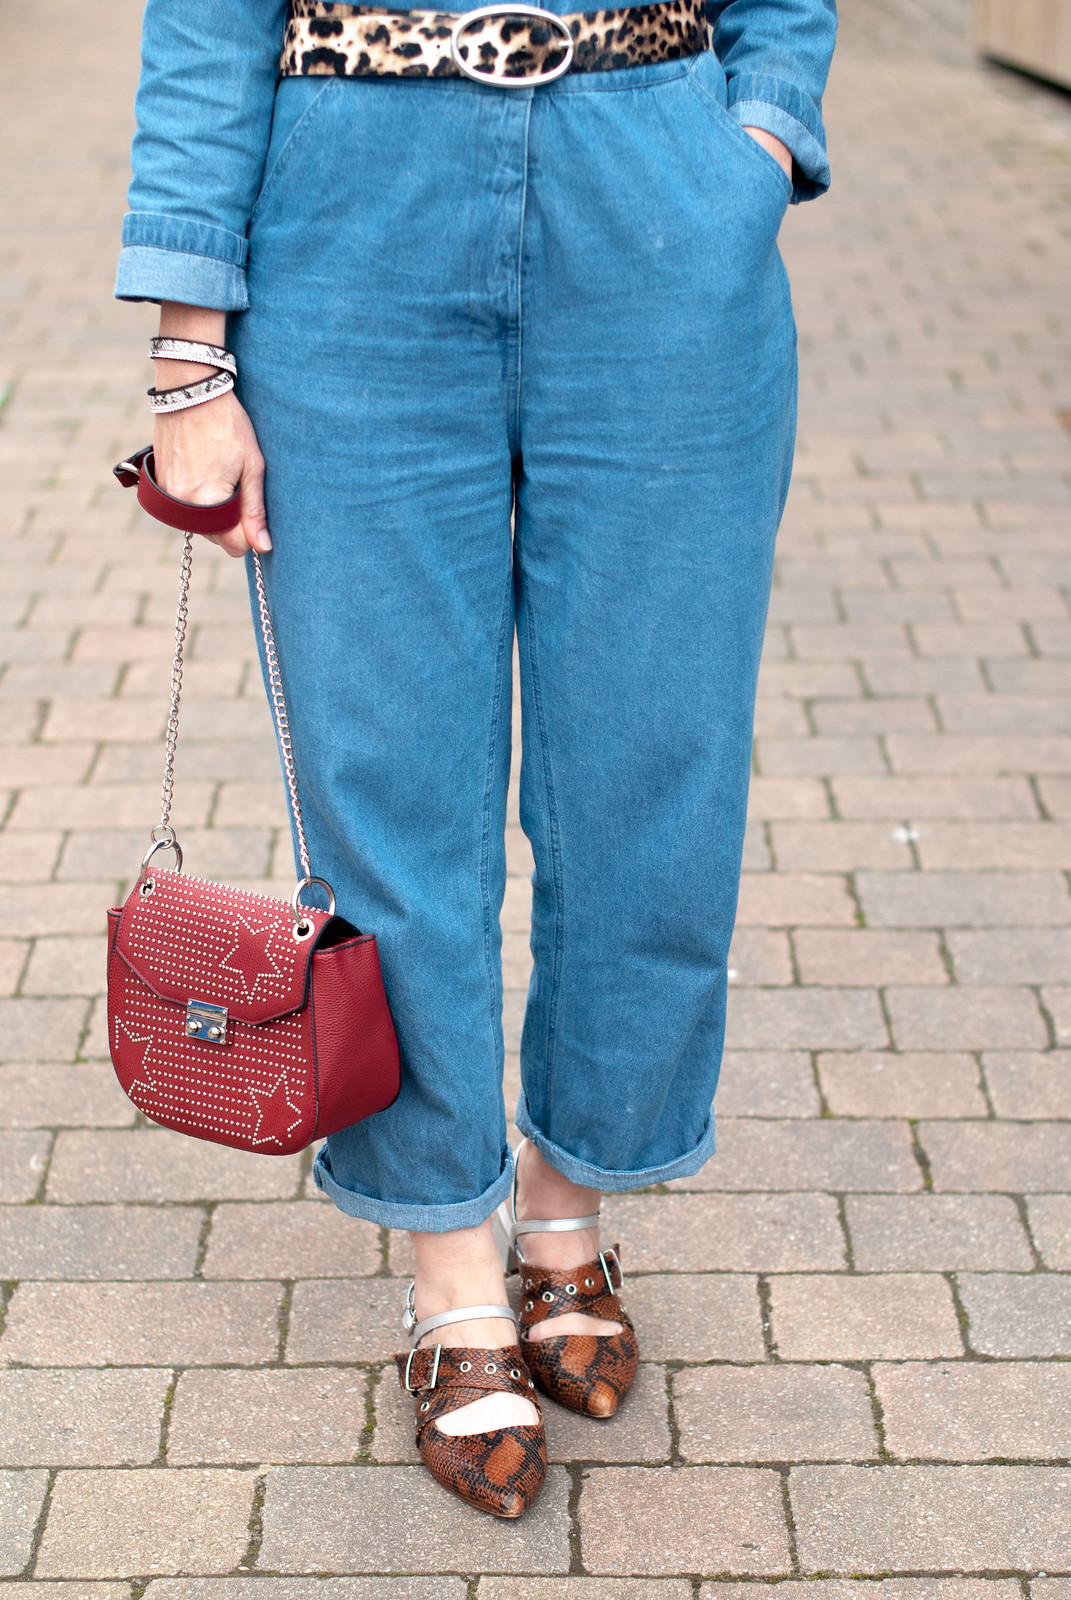 How to style a denim jumpsuit / boilersuit for the summer  leopard print belt  red studded crossbody bag  pointed toe snakeskin Finery flats | Not Dressed As Lamb, over 40 style